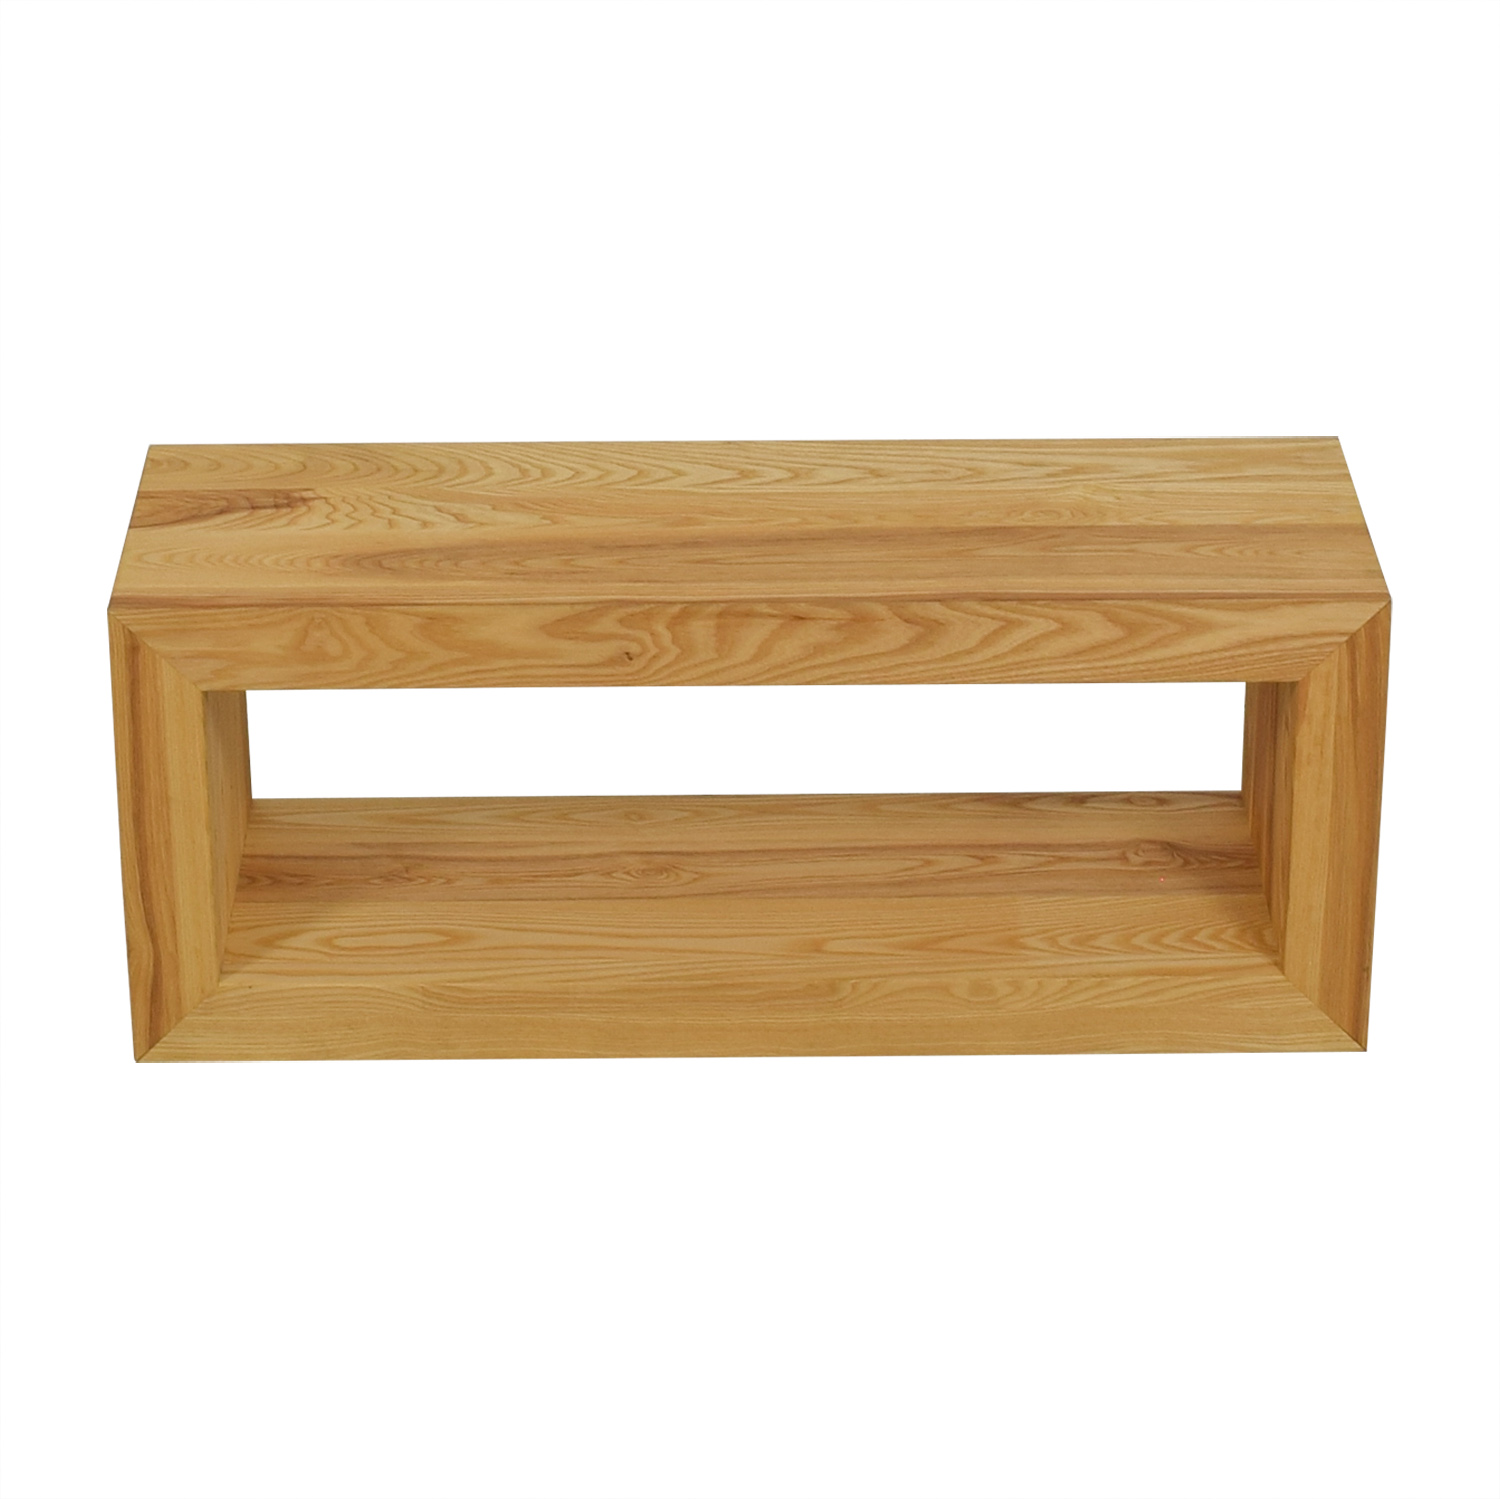 Hugo & Hoby Hugo & Hoby Humphrey Entertainment Console on sale